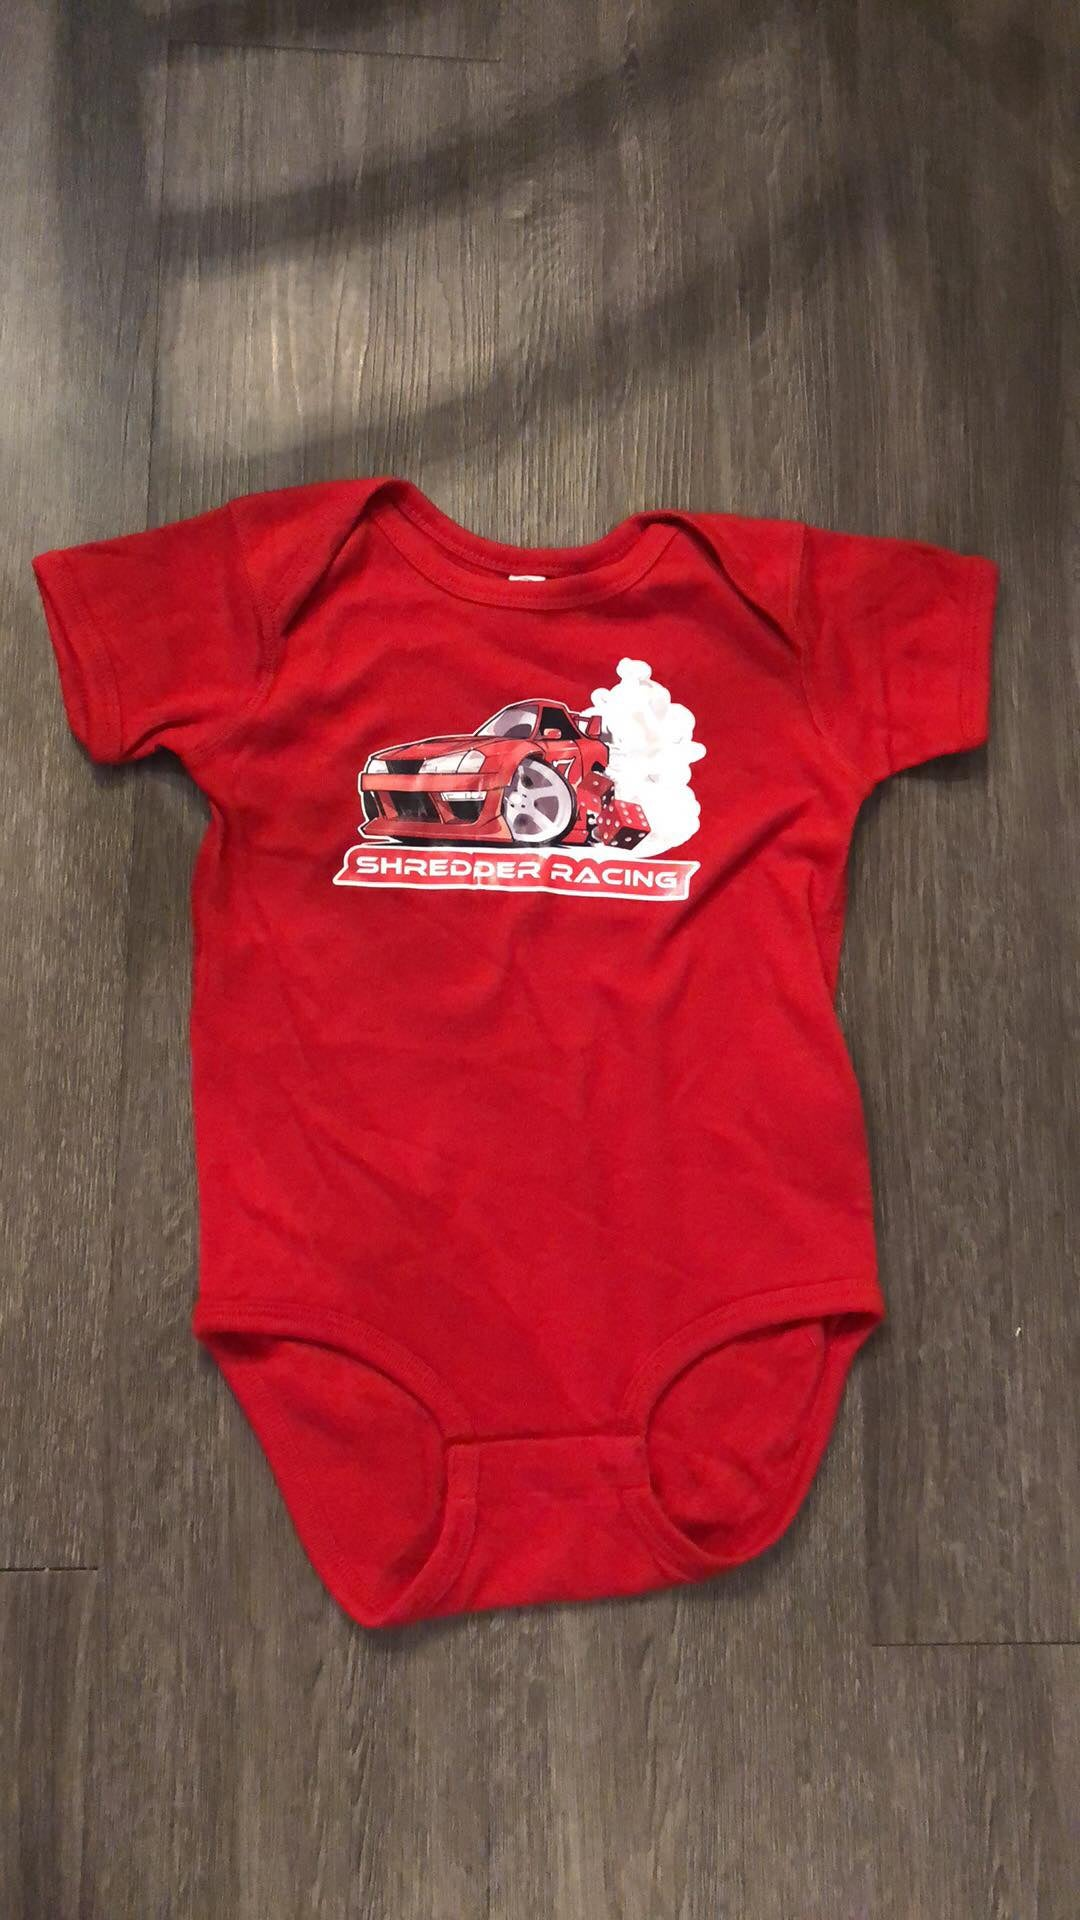 Image of Baby Shredder Racing Onesie